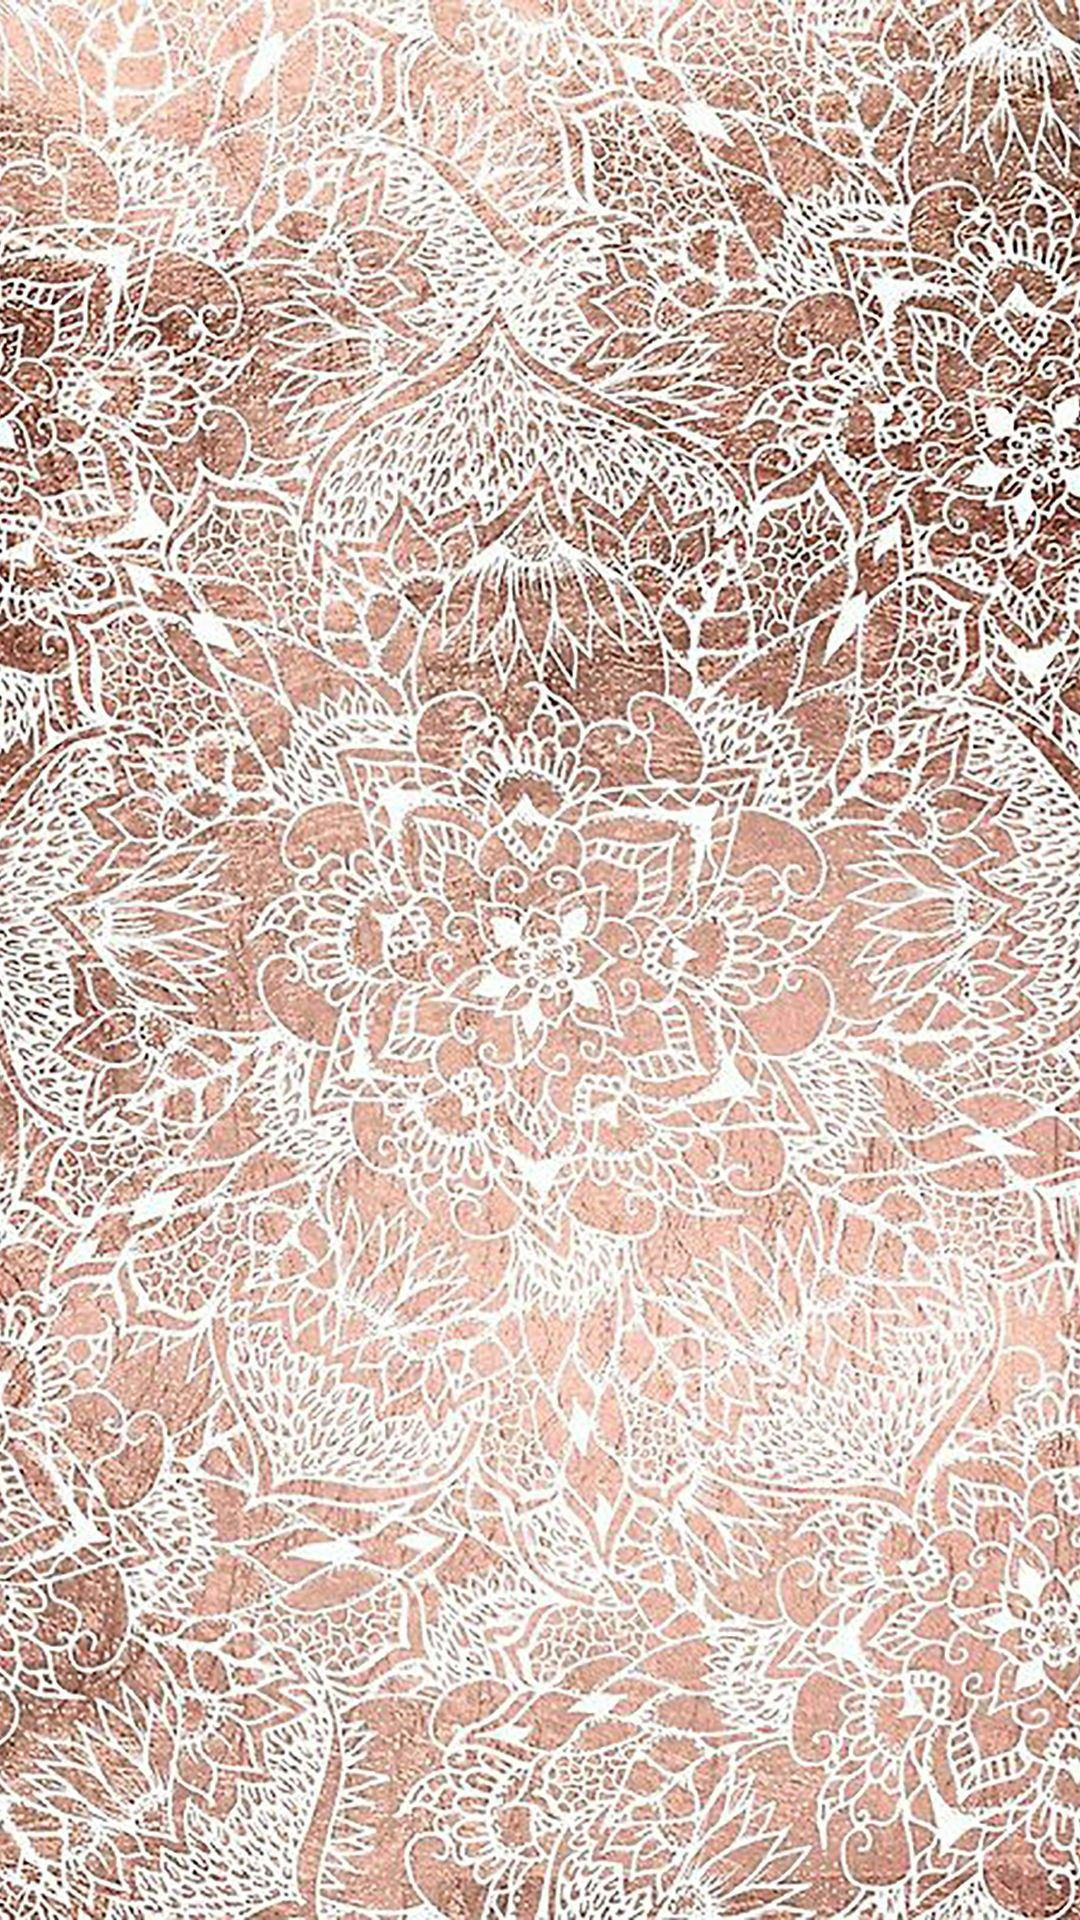 Rose gold wallpaper by Kristen Mangon on Pretty Stuffs